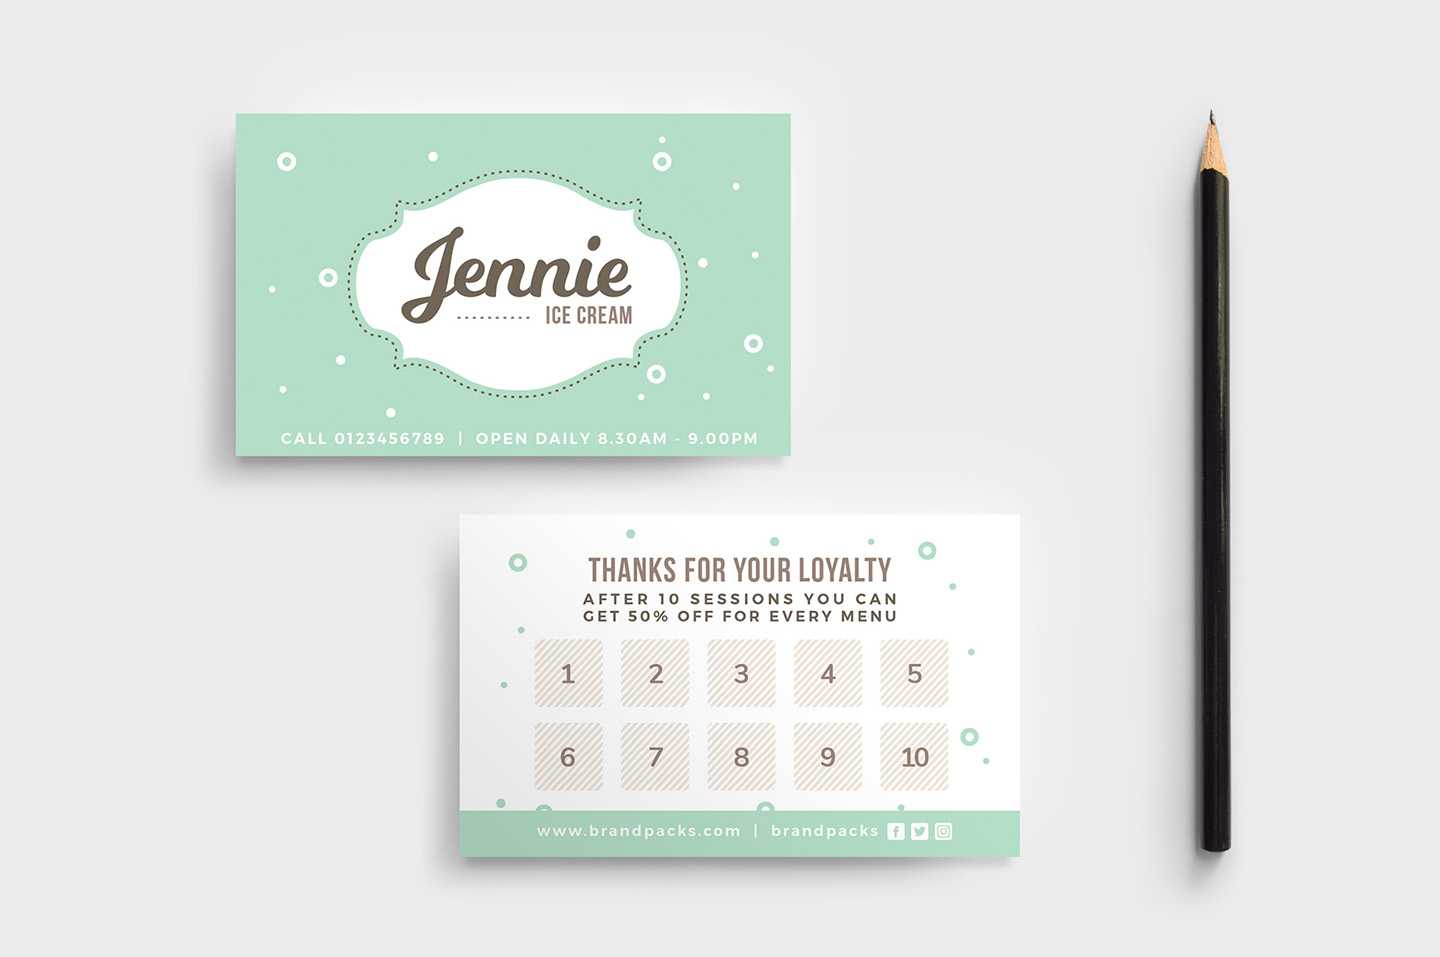 Free Loyalty Card Templates - Psd, Ai & Vector - Brandpacks With Business Punch Card Template Free